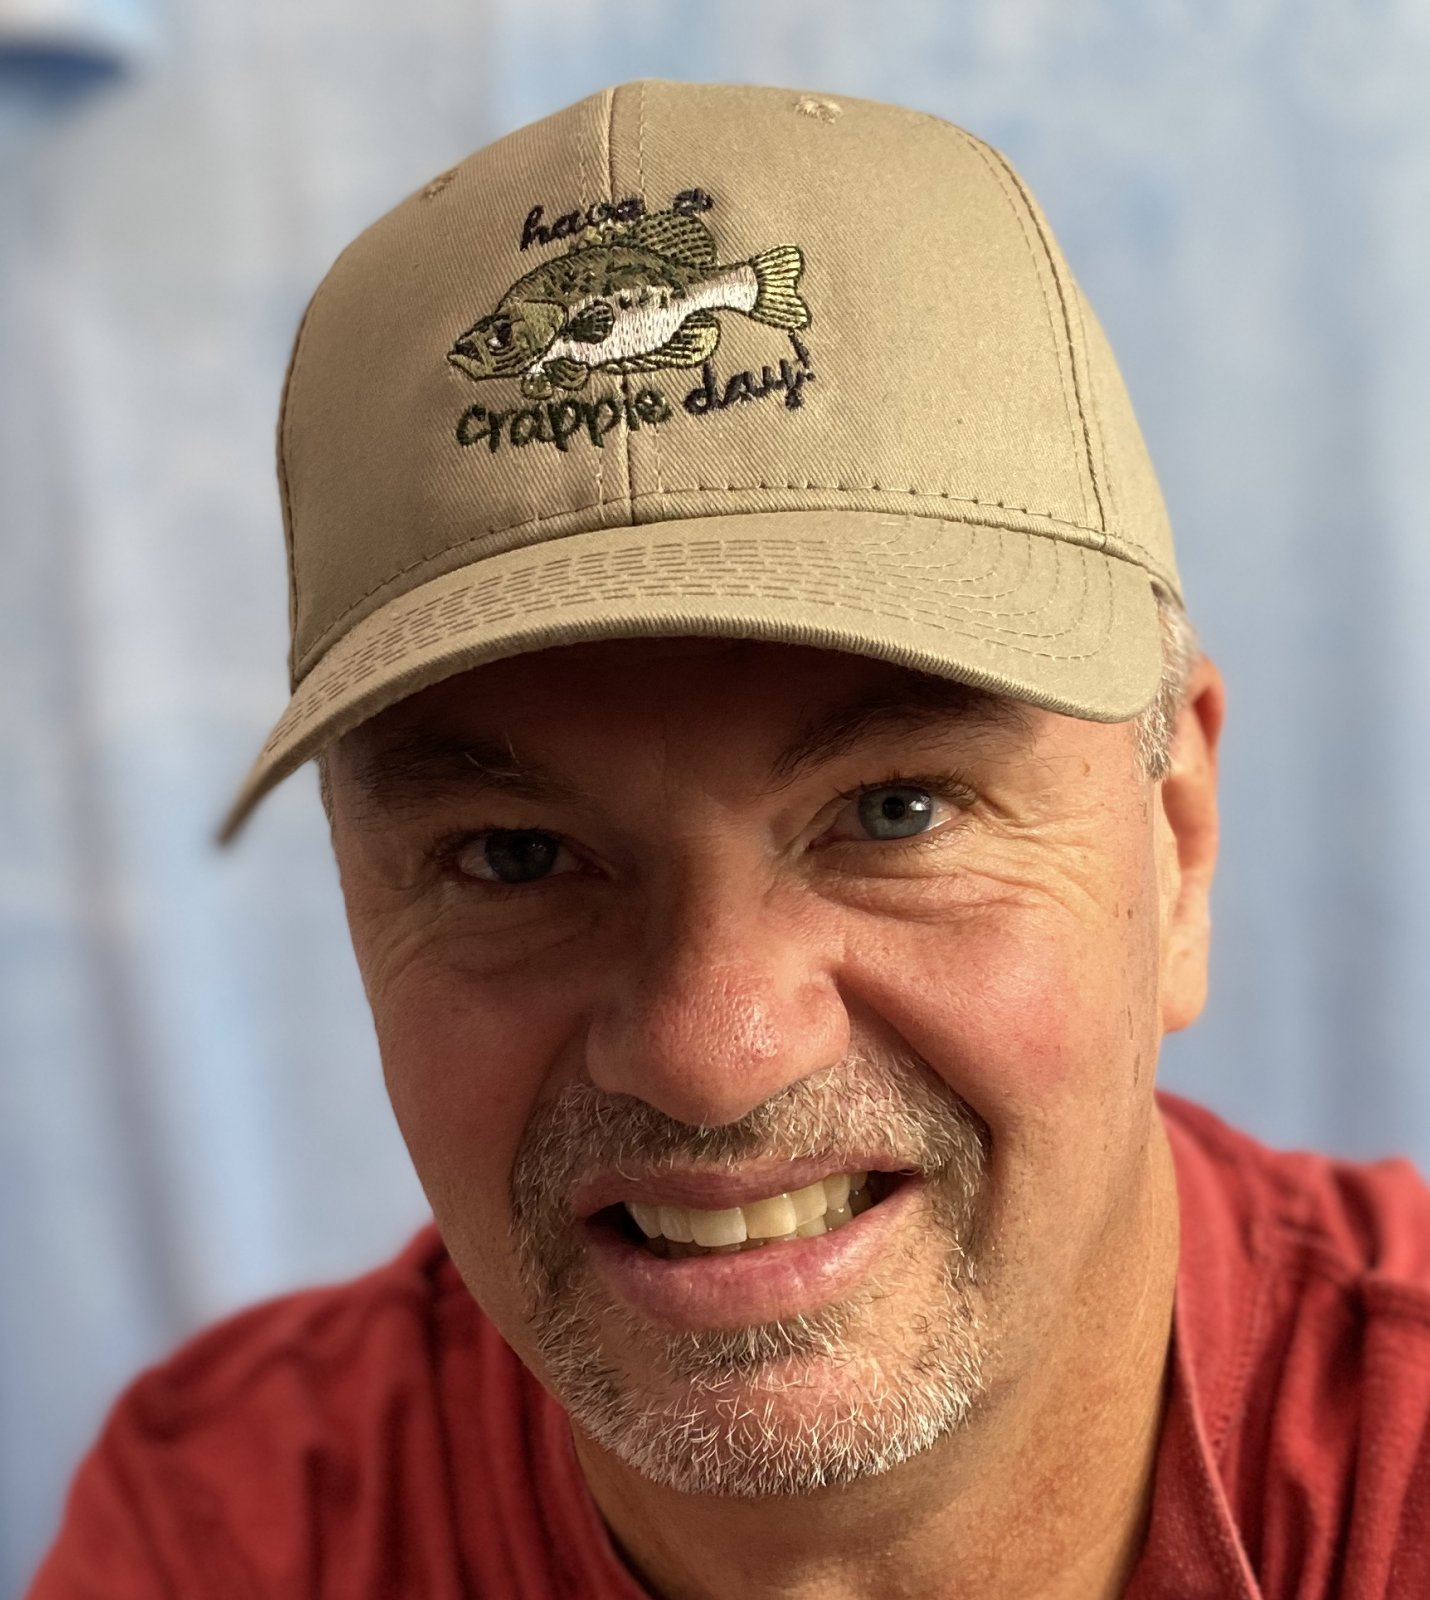 Have a Crappie Day - Custom Embroidered - Richardson Outdoor Cap - GL-271 Adjustable Twill